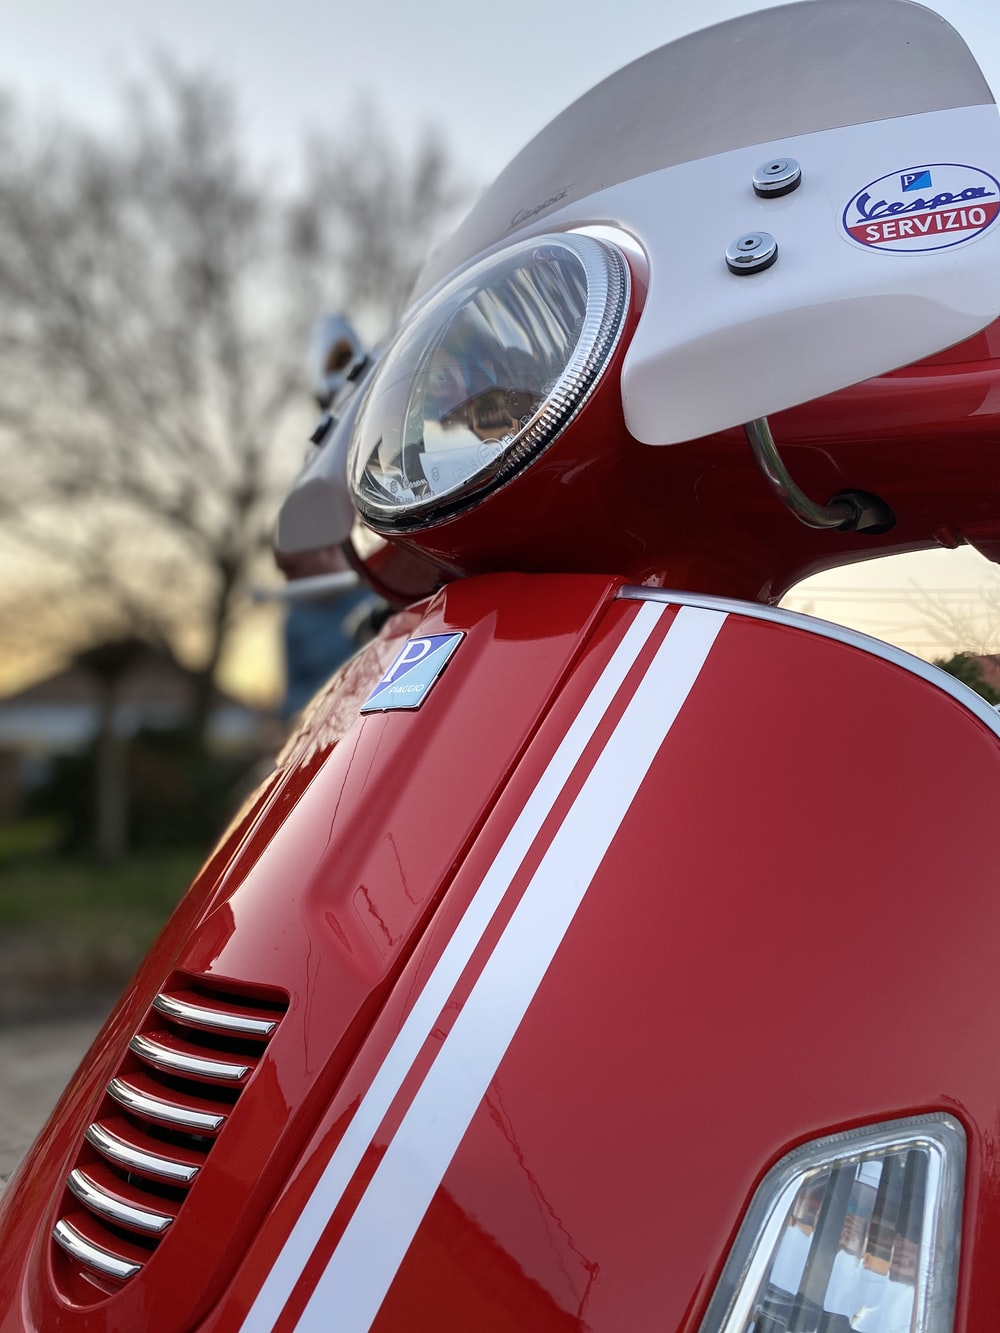 red and white motorcycle in tilt shift lens